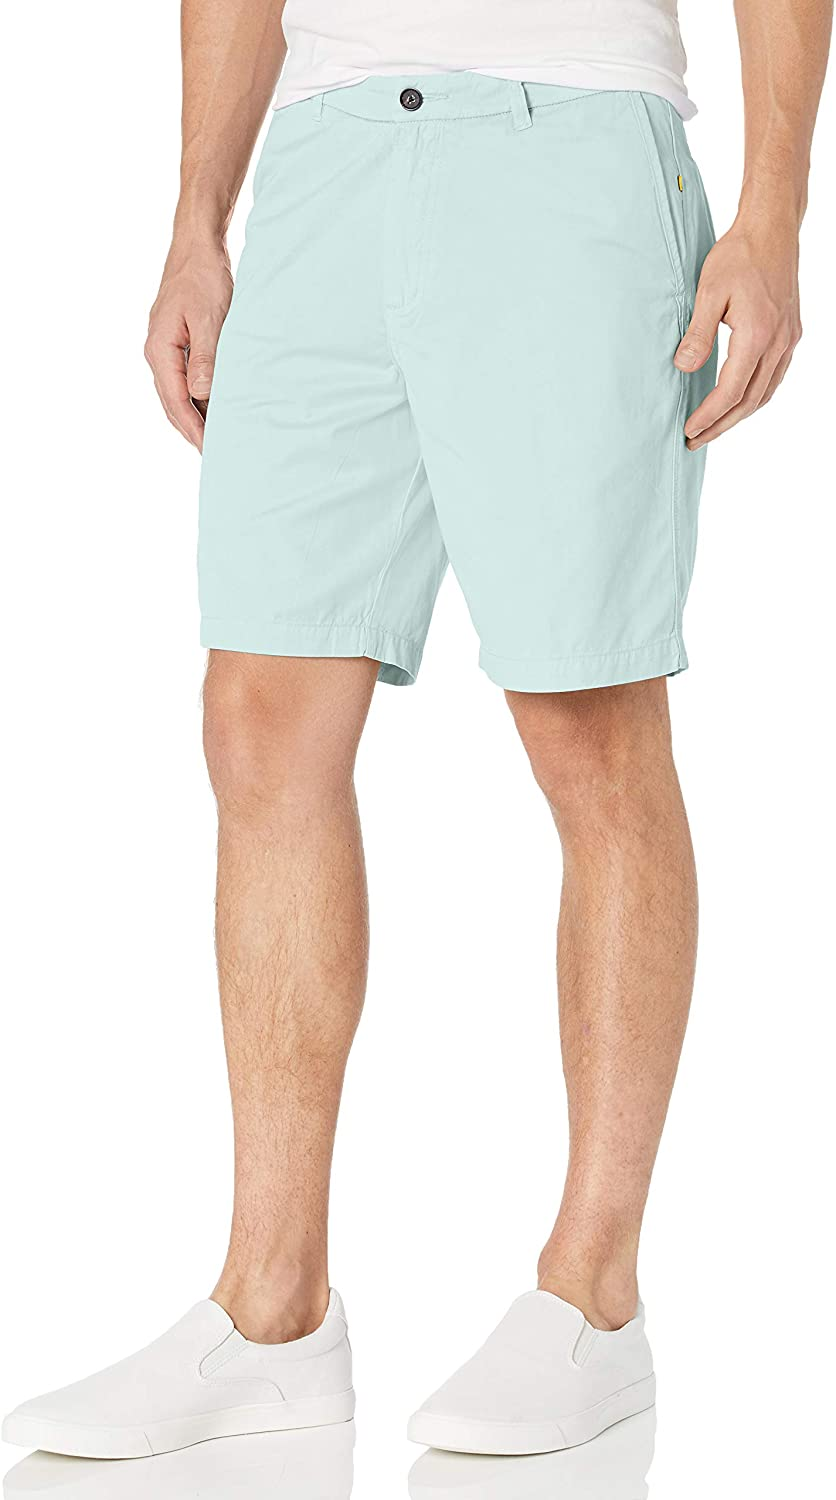 Quiksilver Mens Down Under 4 Finally resale start Agate Size Green Max 71% OFF Shorts